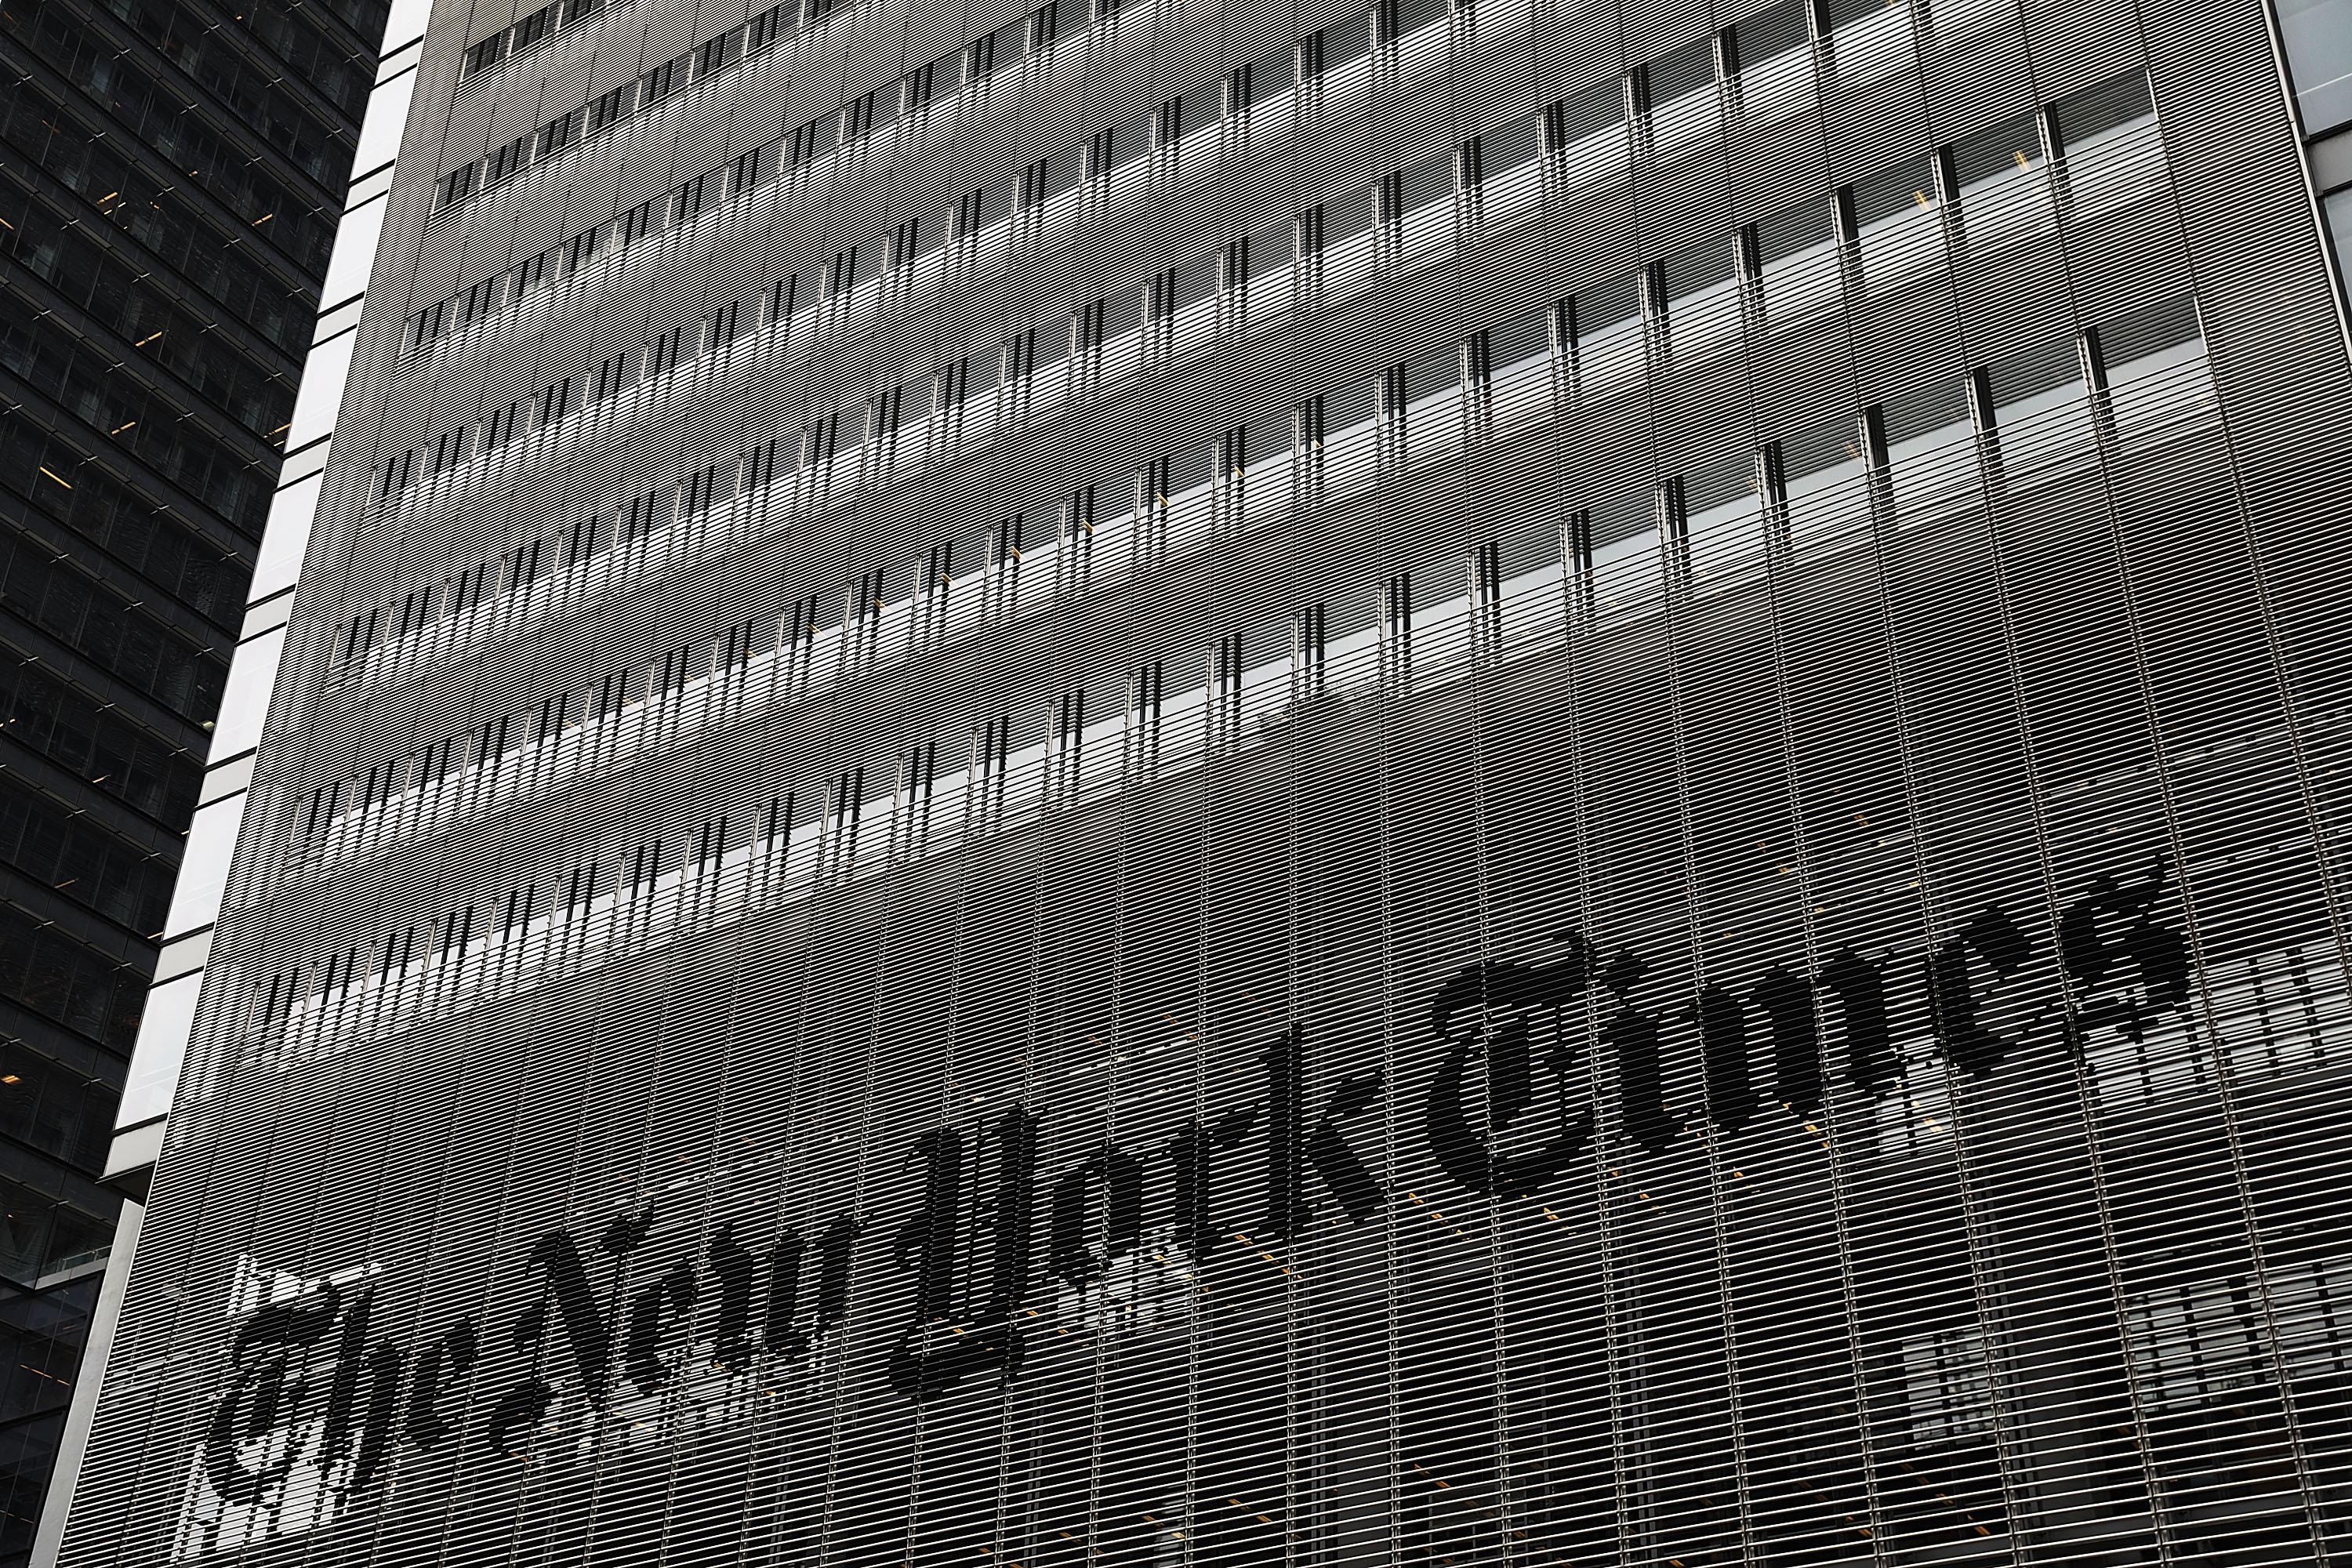 NY Times Abruptly Fires Its New Nazi-Befriending Editorial Board Hire